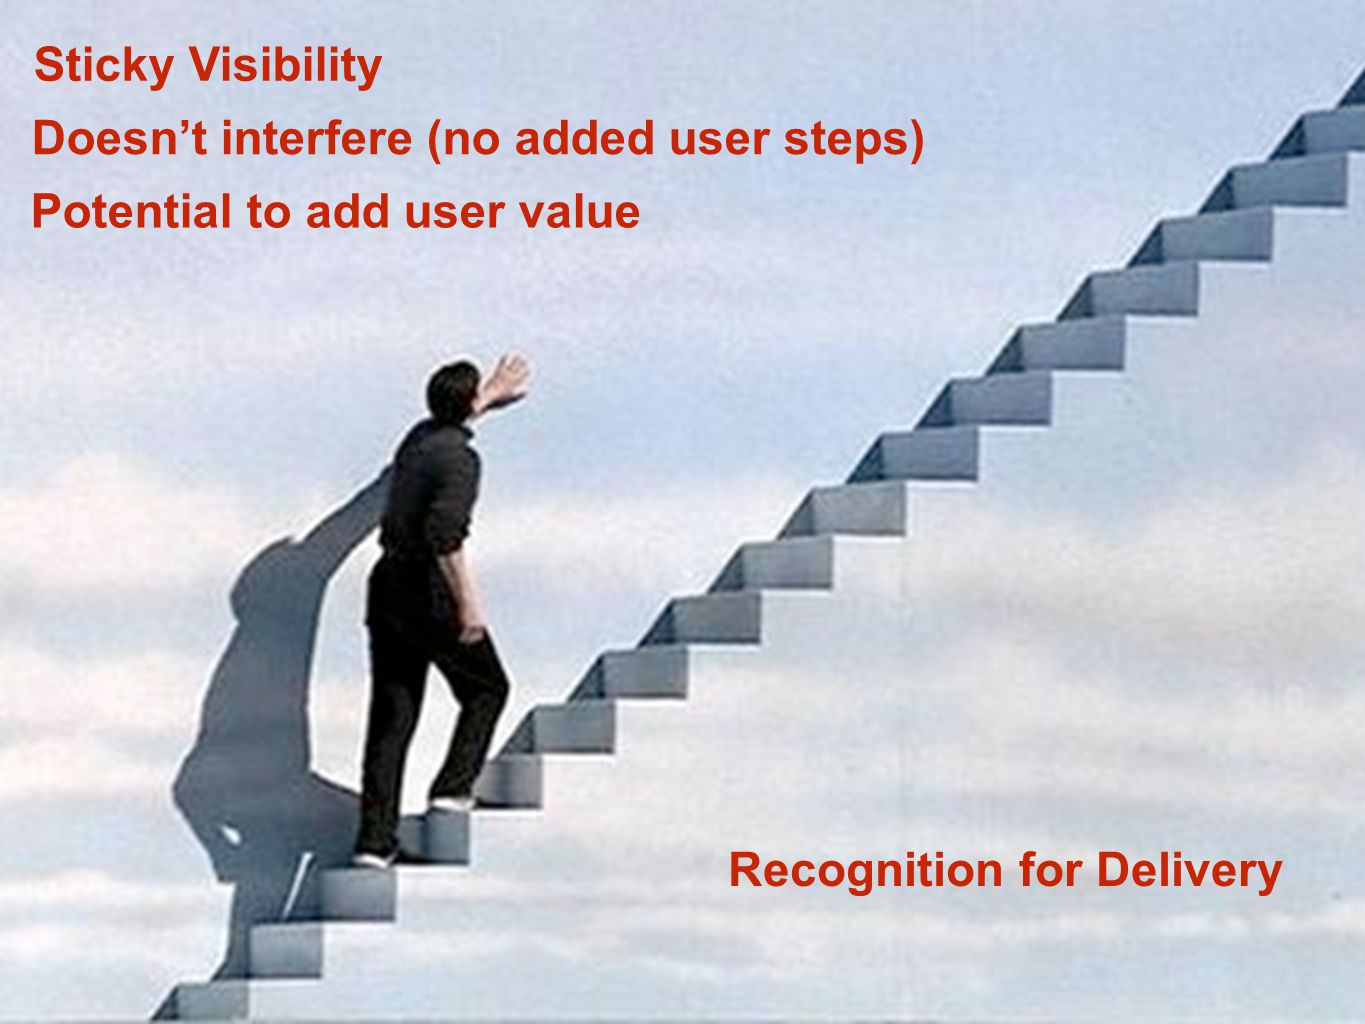 Sticky Visibility Doesn't interfere (no added user steps) Potential to add user value Recognition for Delivery